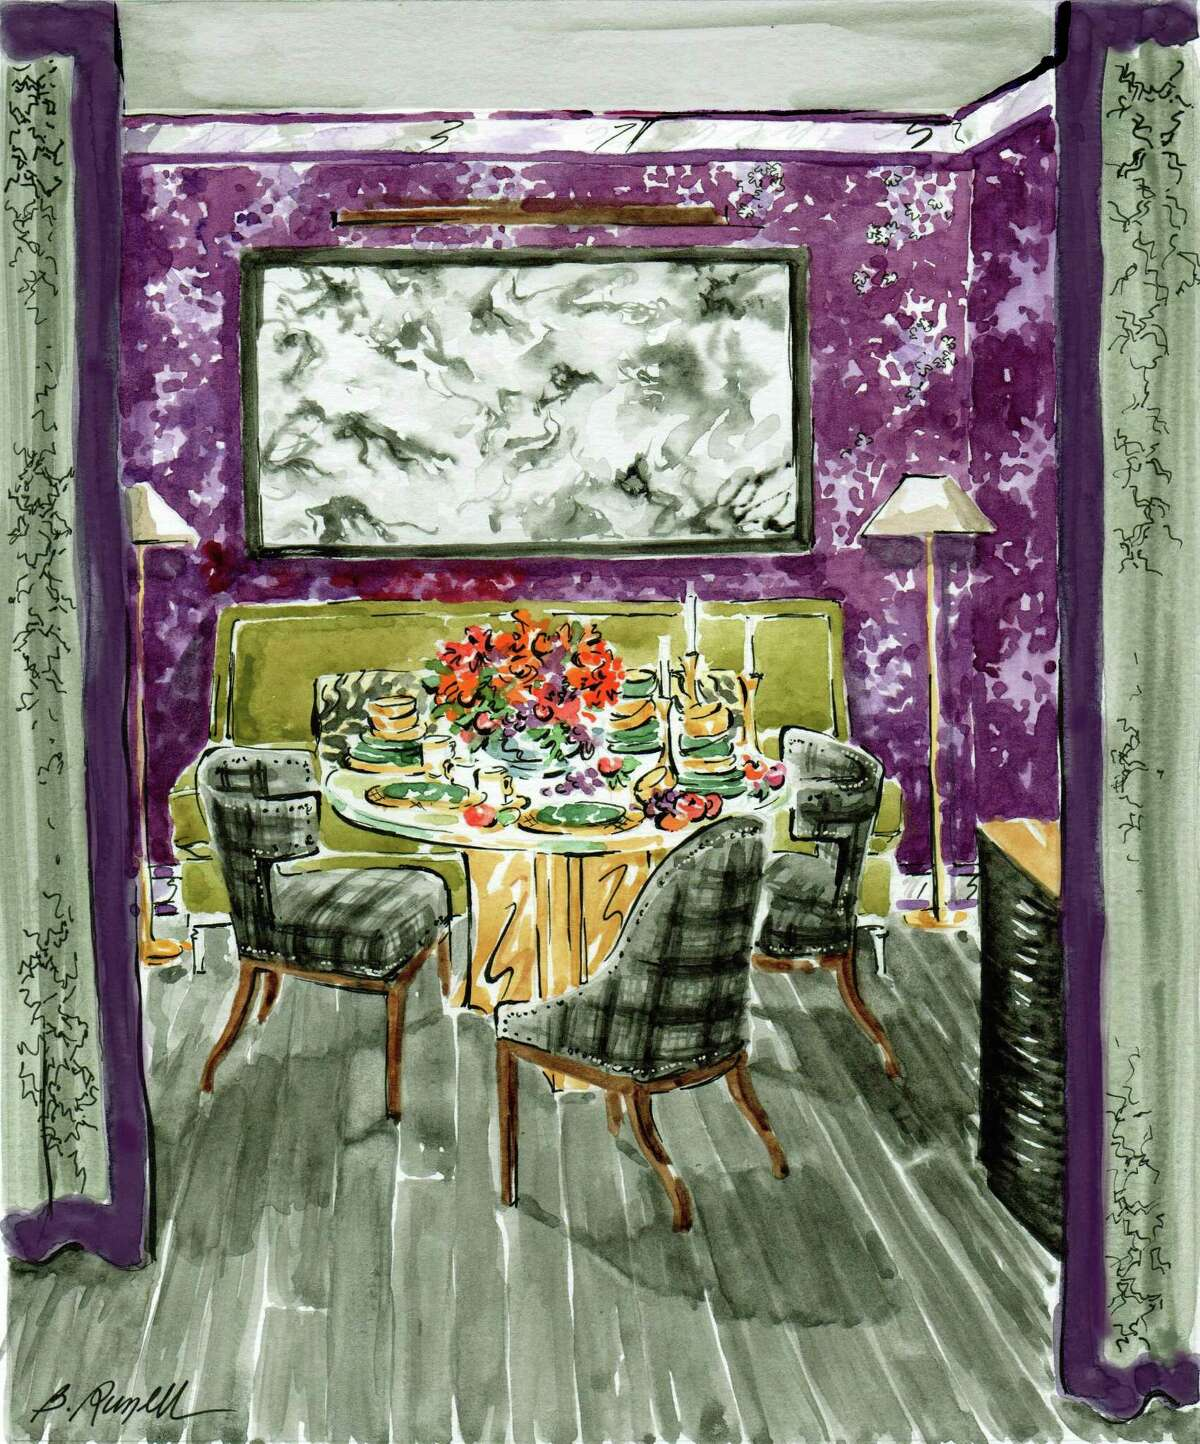 This illustration by Russell Melzer, of Westport, is for the 2017 Rooms with a View designer showcase for designer Robert Passal, of New York City.